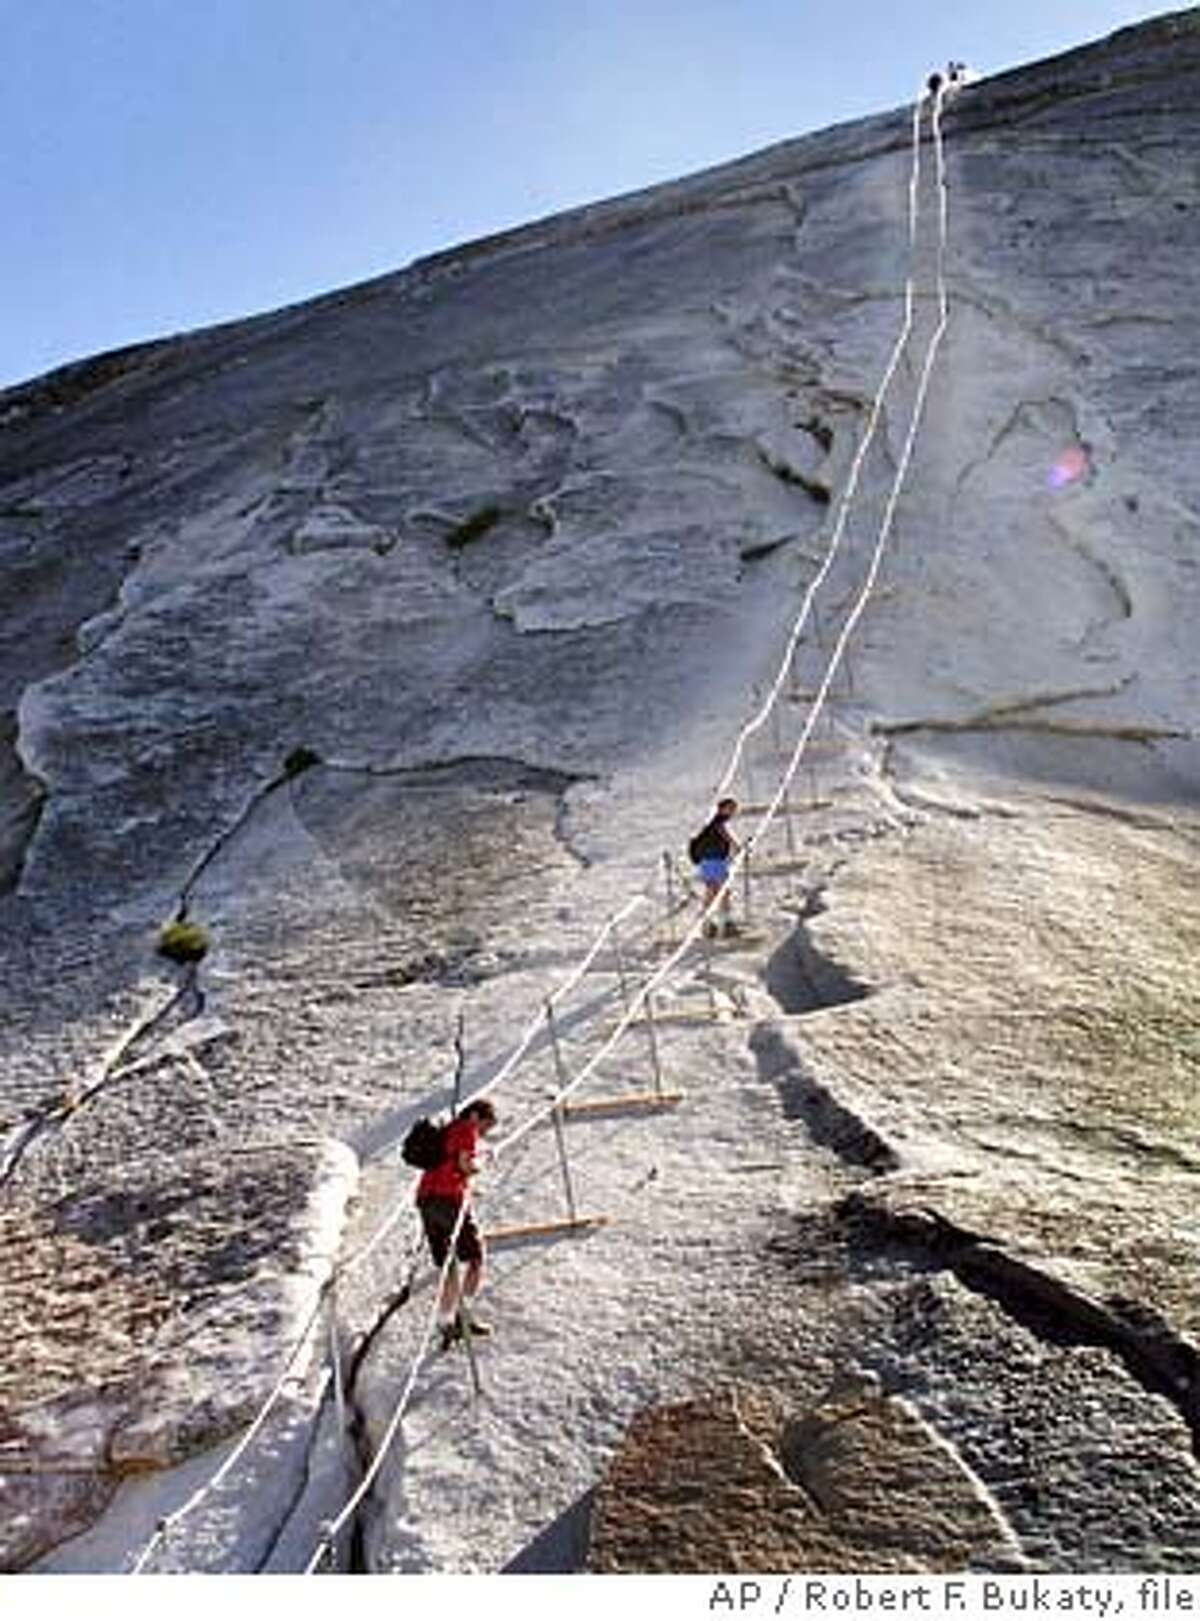 ** FOR IMMEDIATE RELEASE **Hikers decend the cable route after climbing to summit of Half Dome, June 6, 2004, in Yosemite National Park. In 1875 George Anderson first climbed this route by drilling holes in the granite and attaching ropes to pull himself to the summit. The park has maintained permanent cables here since 1919. (AP Photo/Robert F. Bukaty)